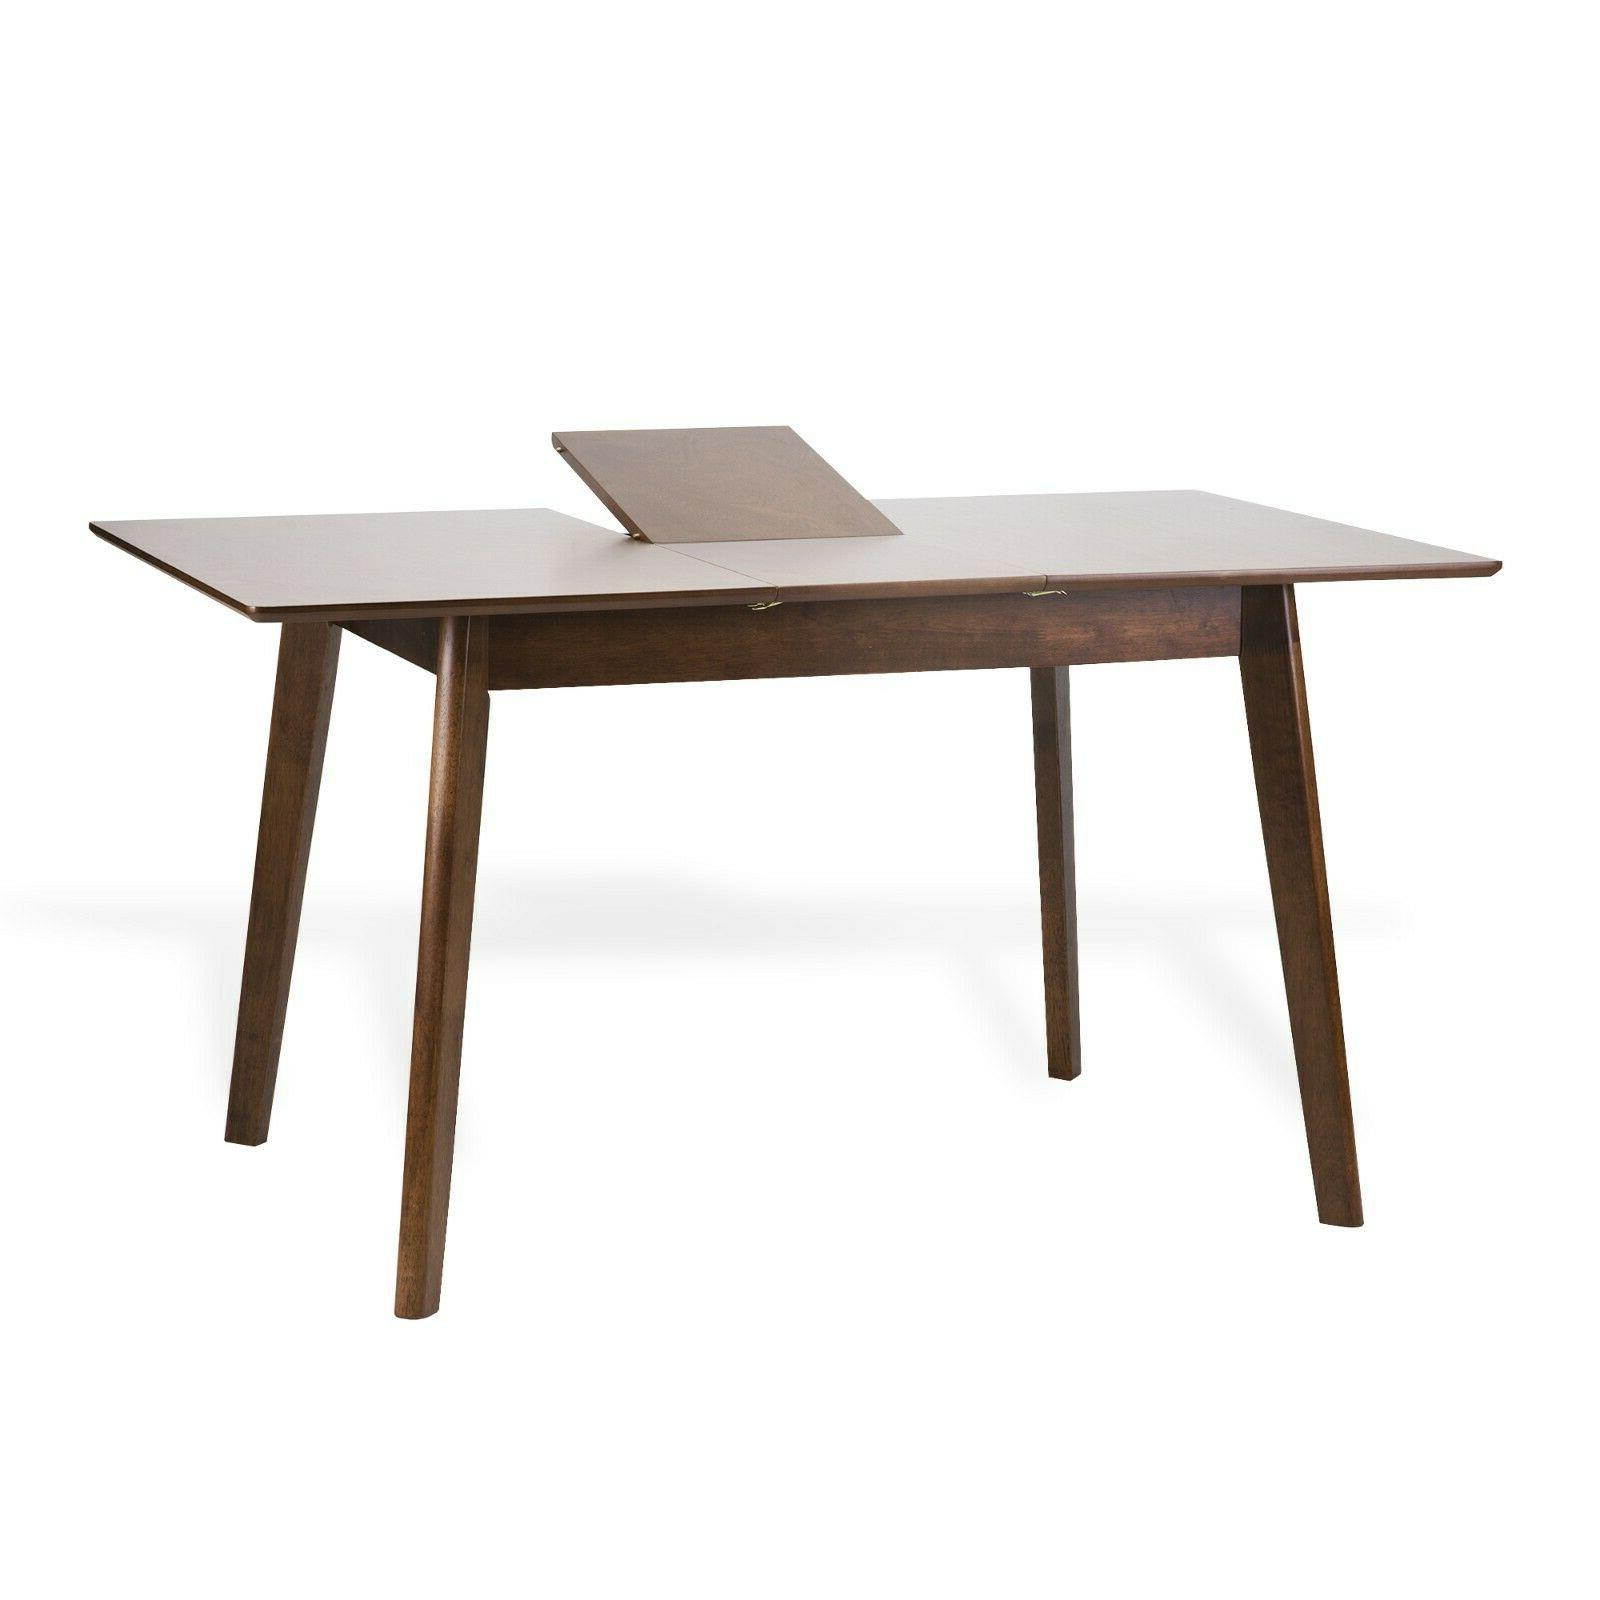 Dining of 6: 4 Extendable Table